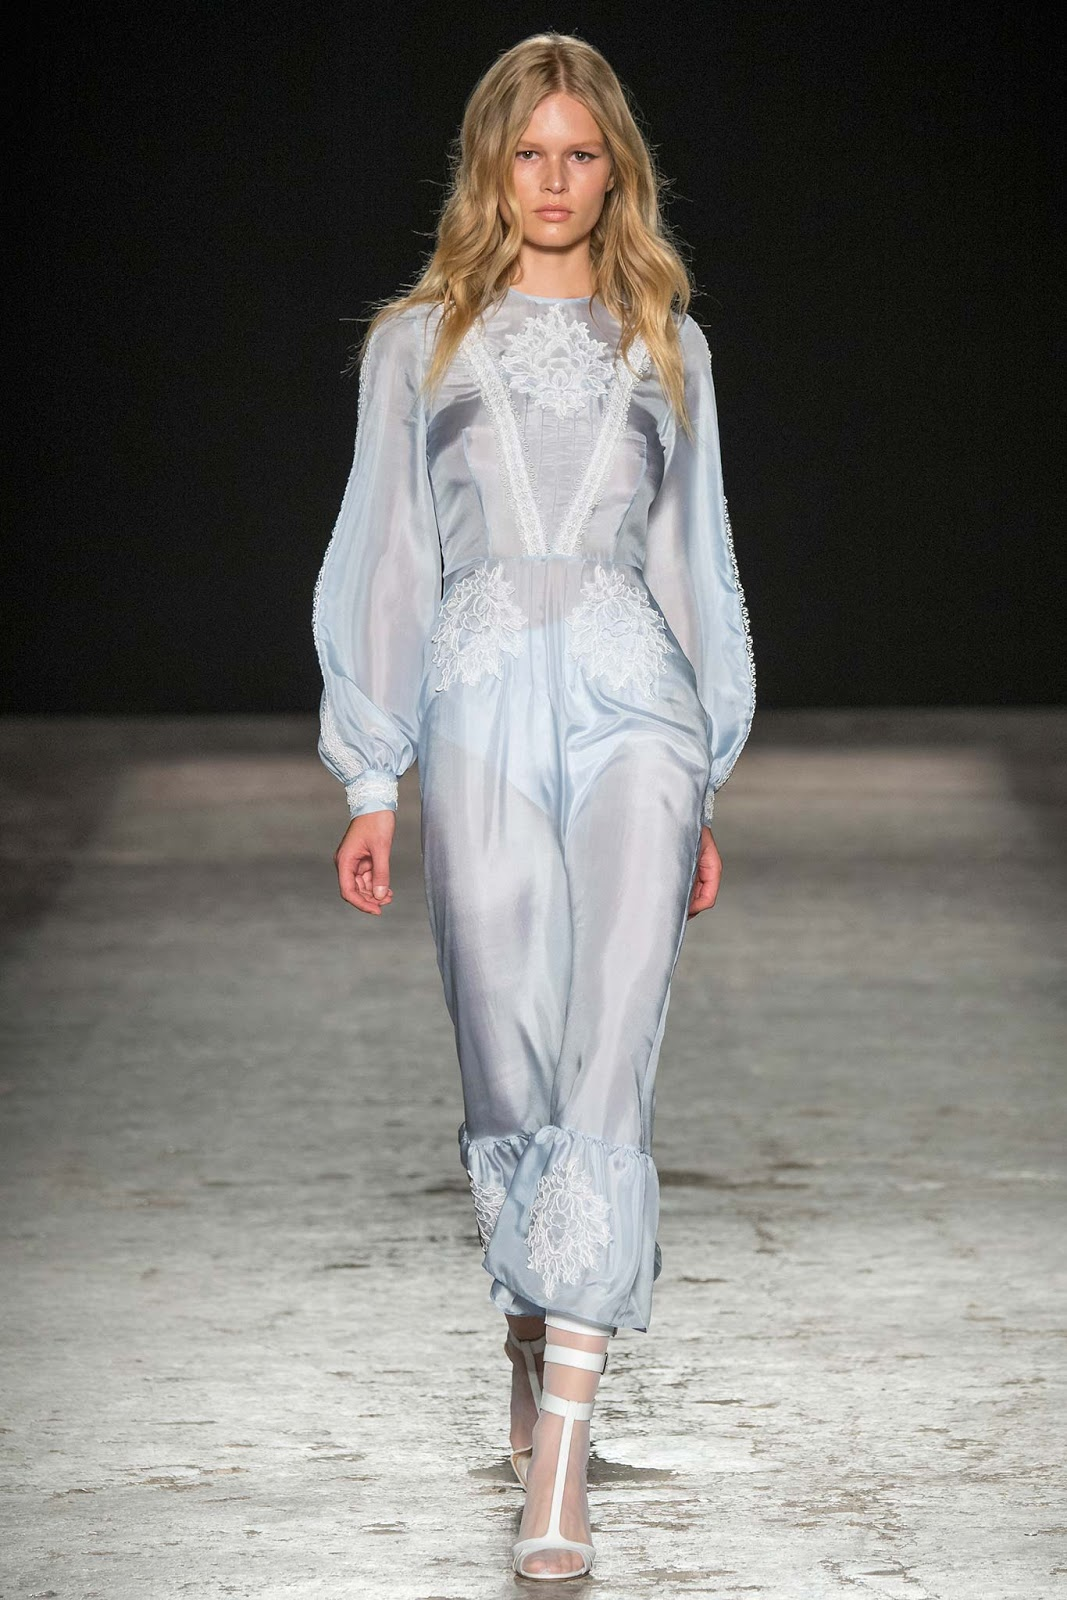 Francesco Scognamiglio: the Fashion Show S / S 2015 at the Milan Fashion Week